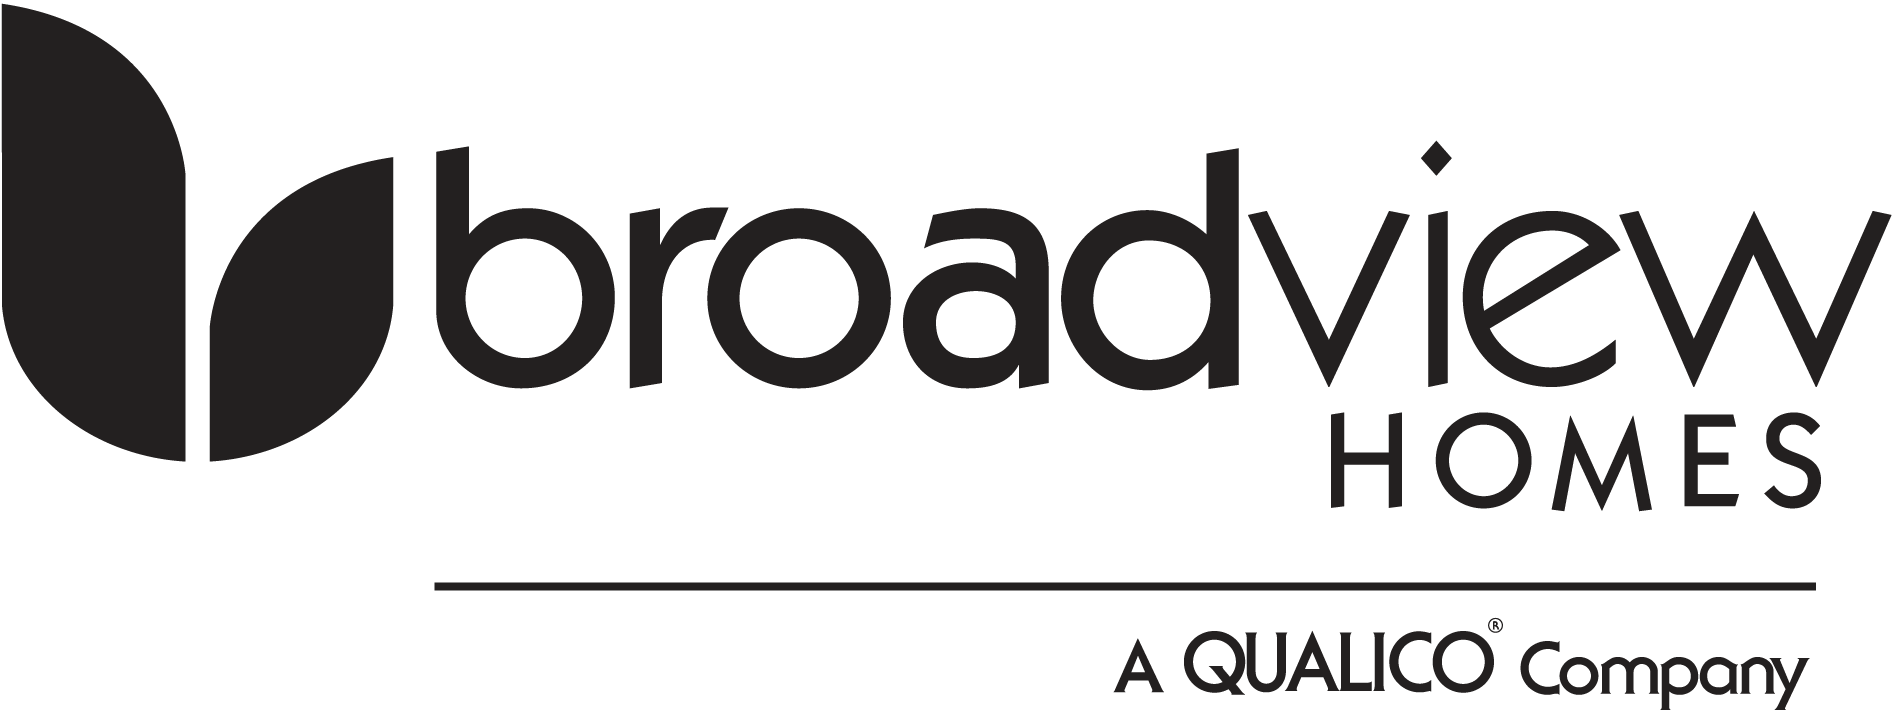 Broadview Homes - A Qualico Company